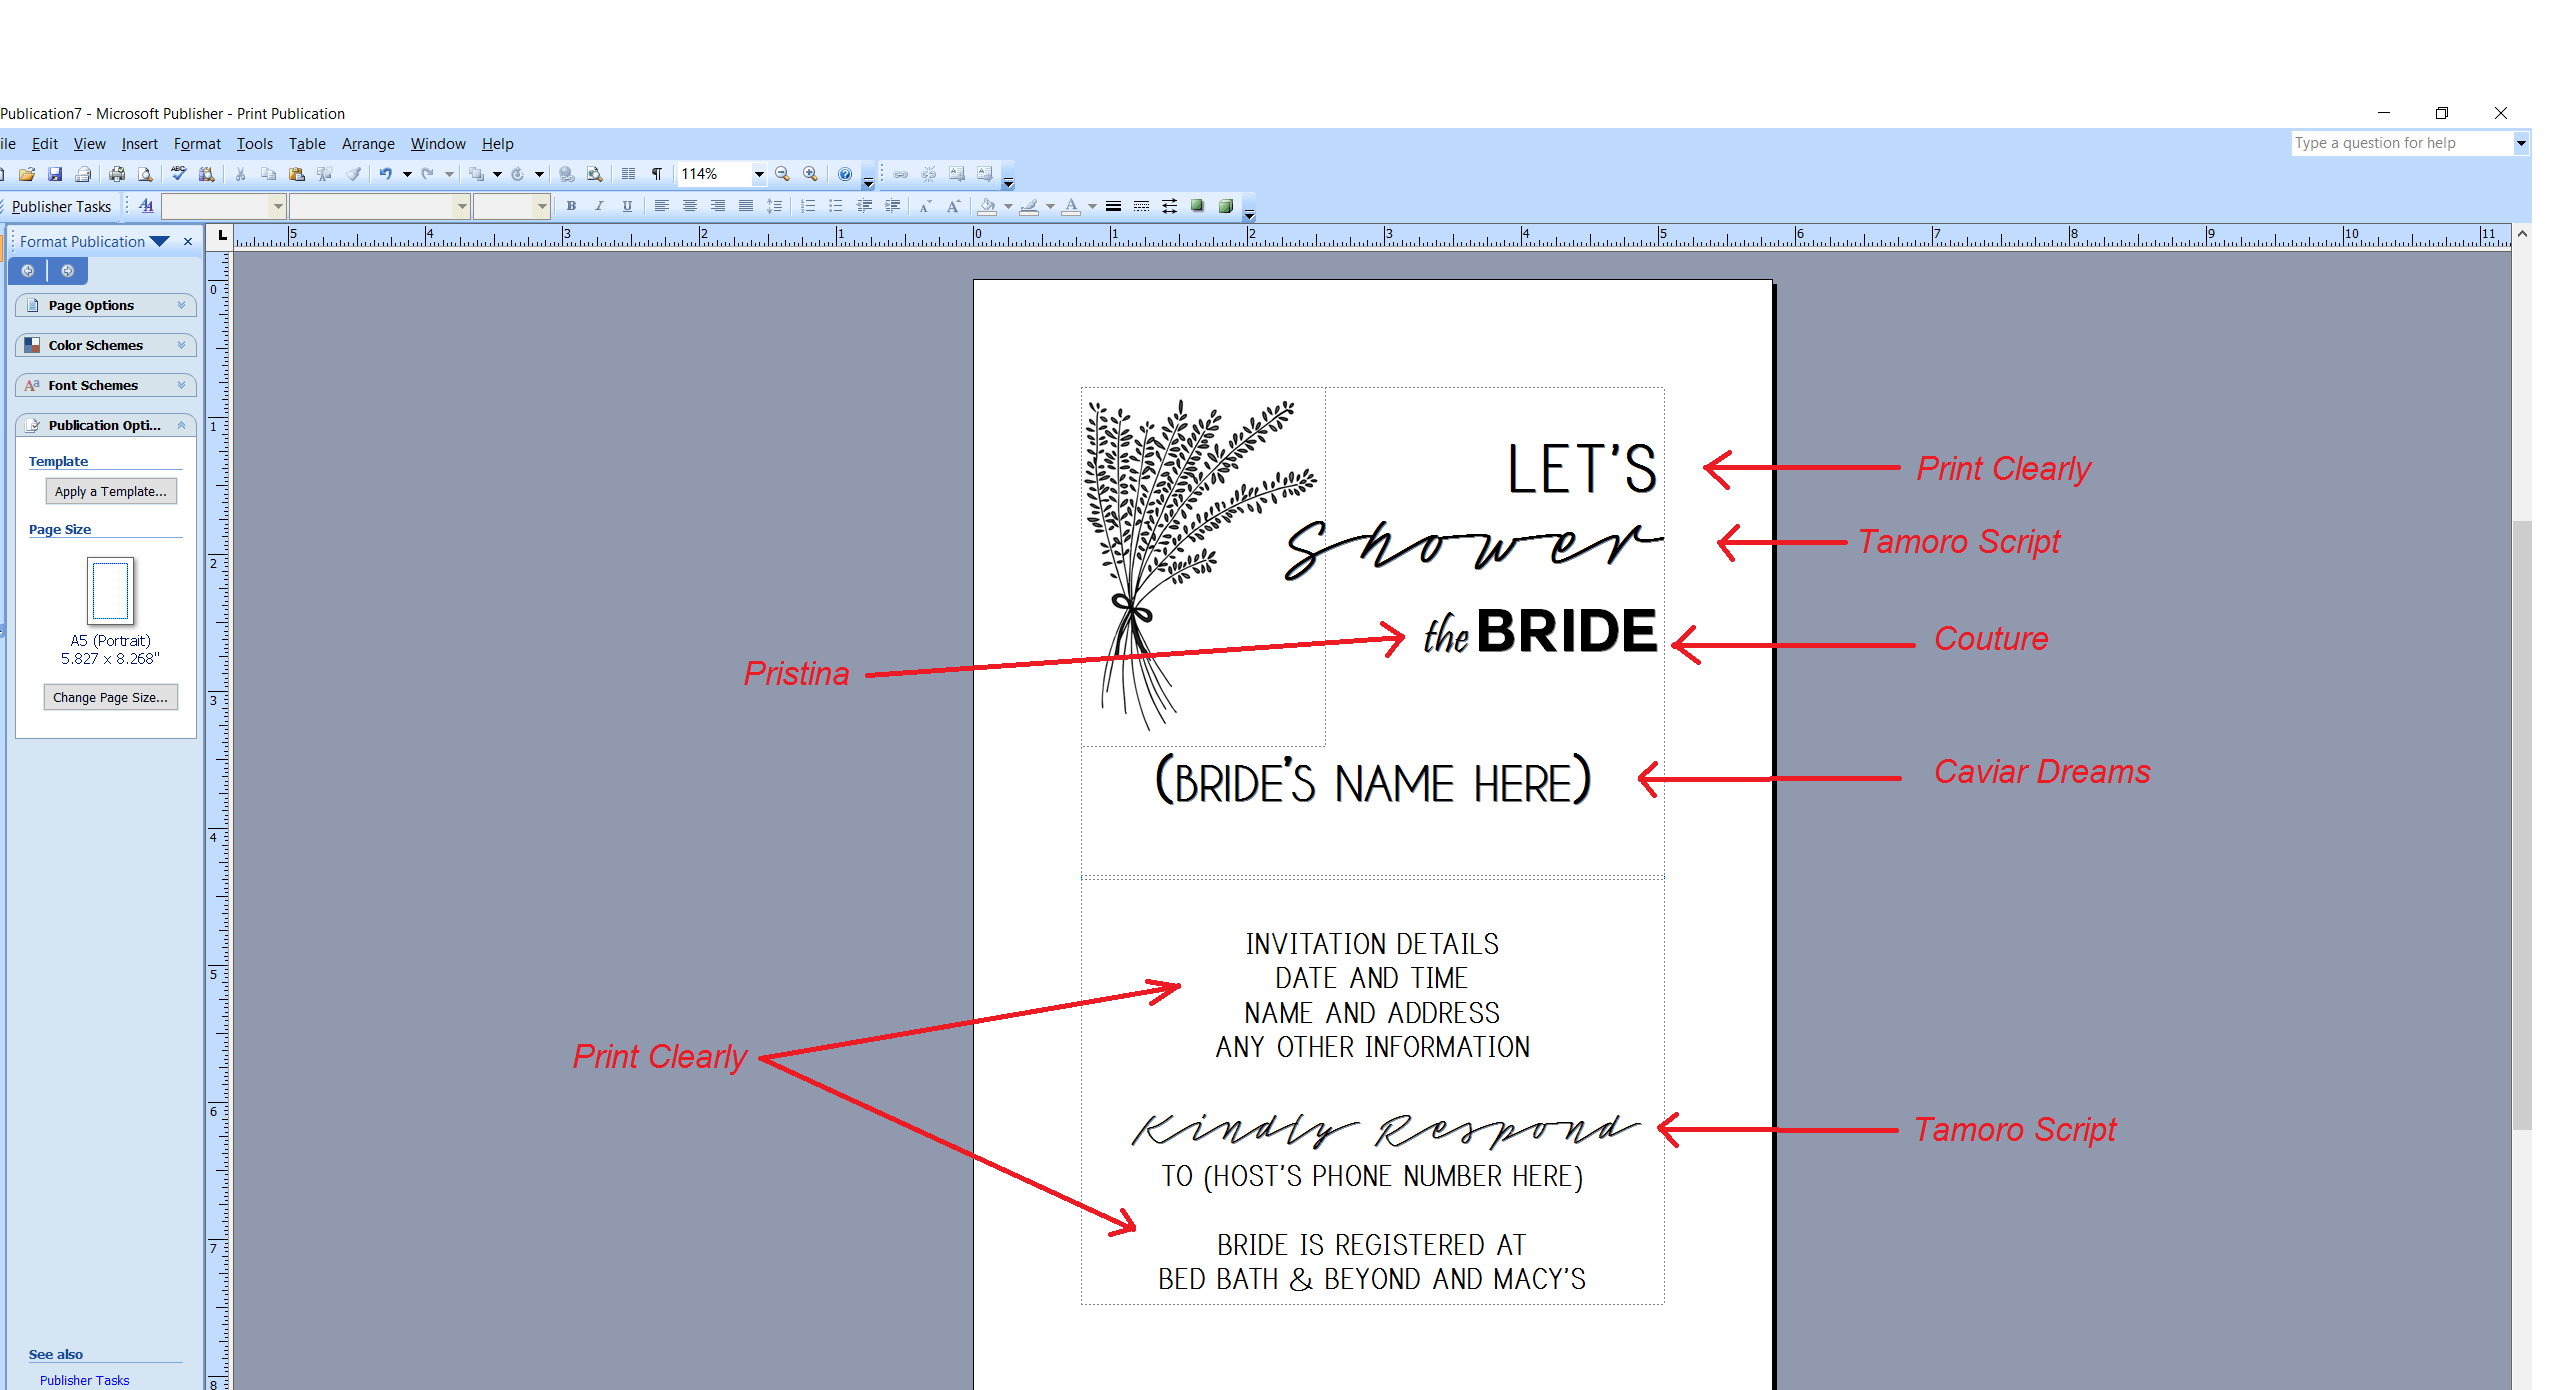 Microsoft Publisher screenshot showing which fonts were used